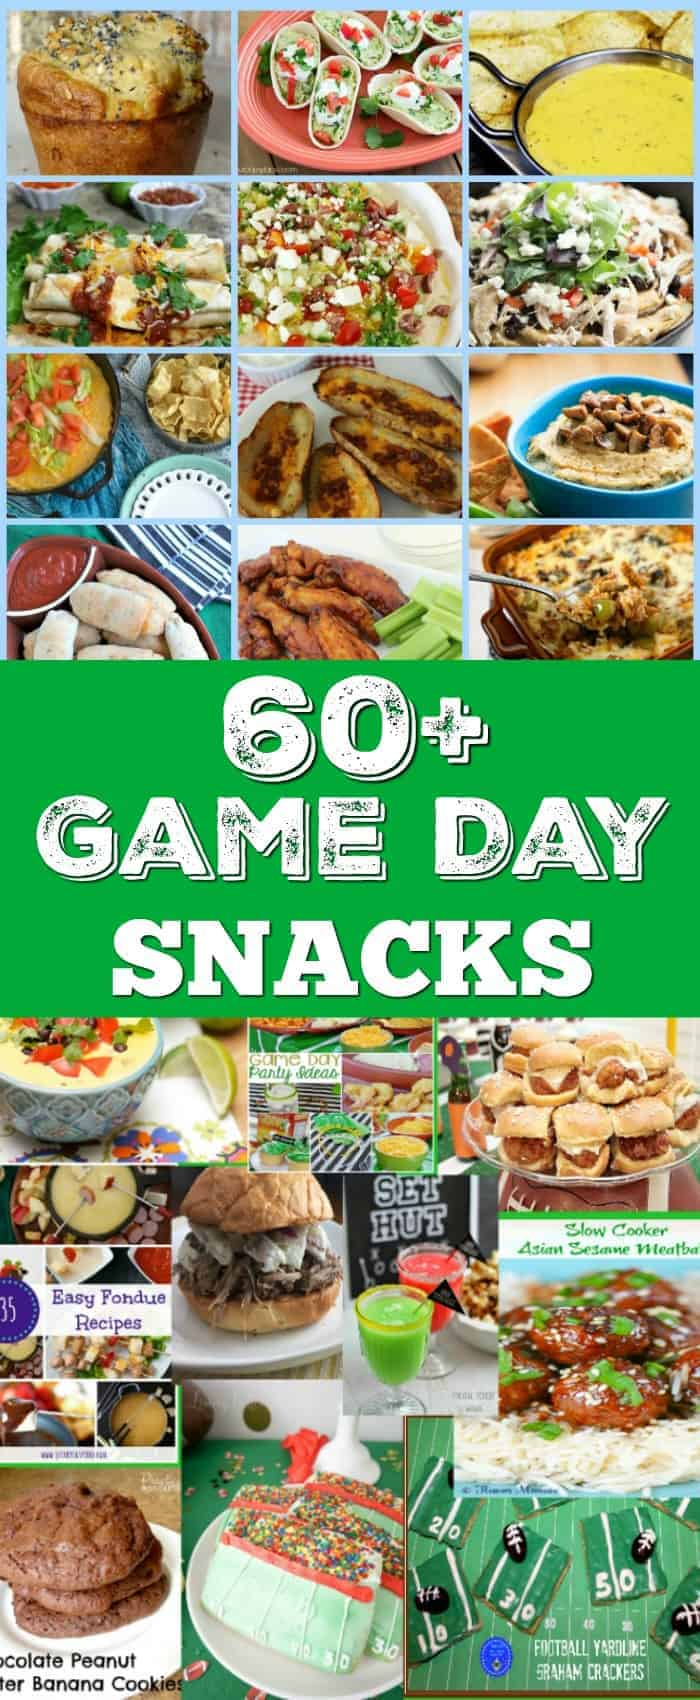 Over 60 delicious game day snack recipes and ideas